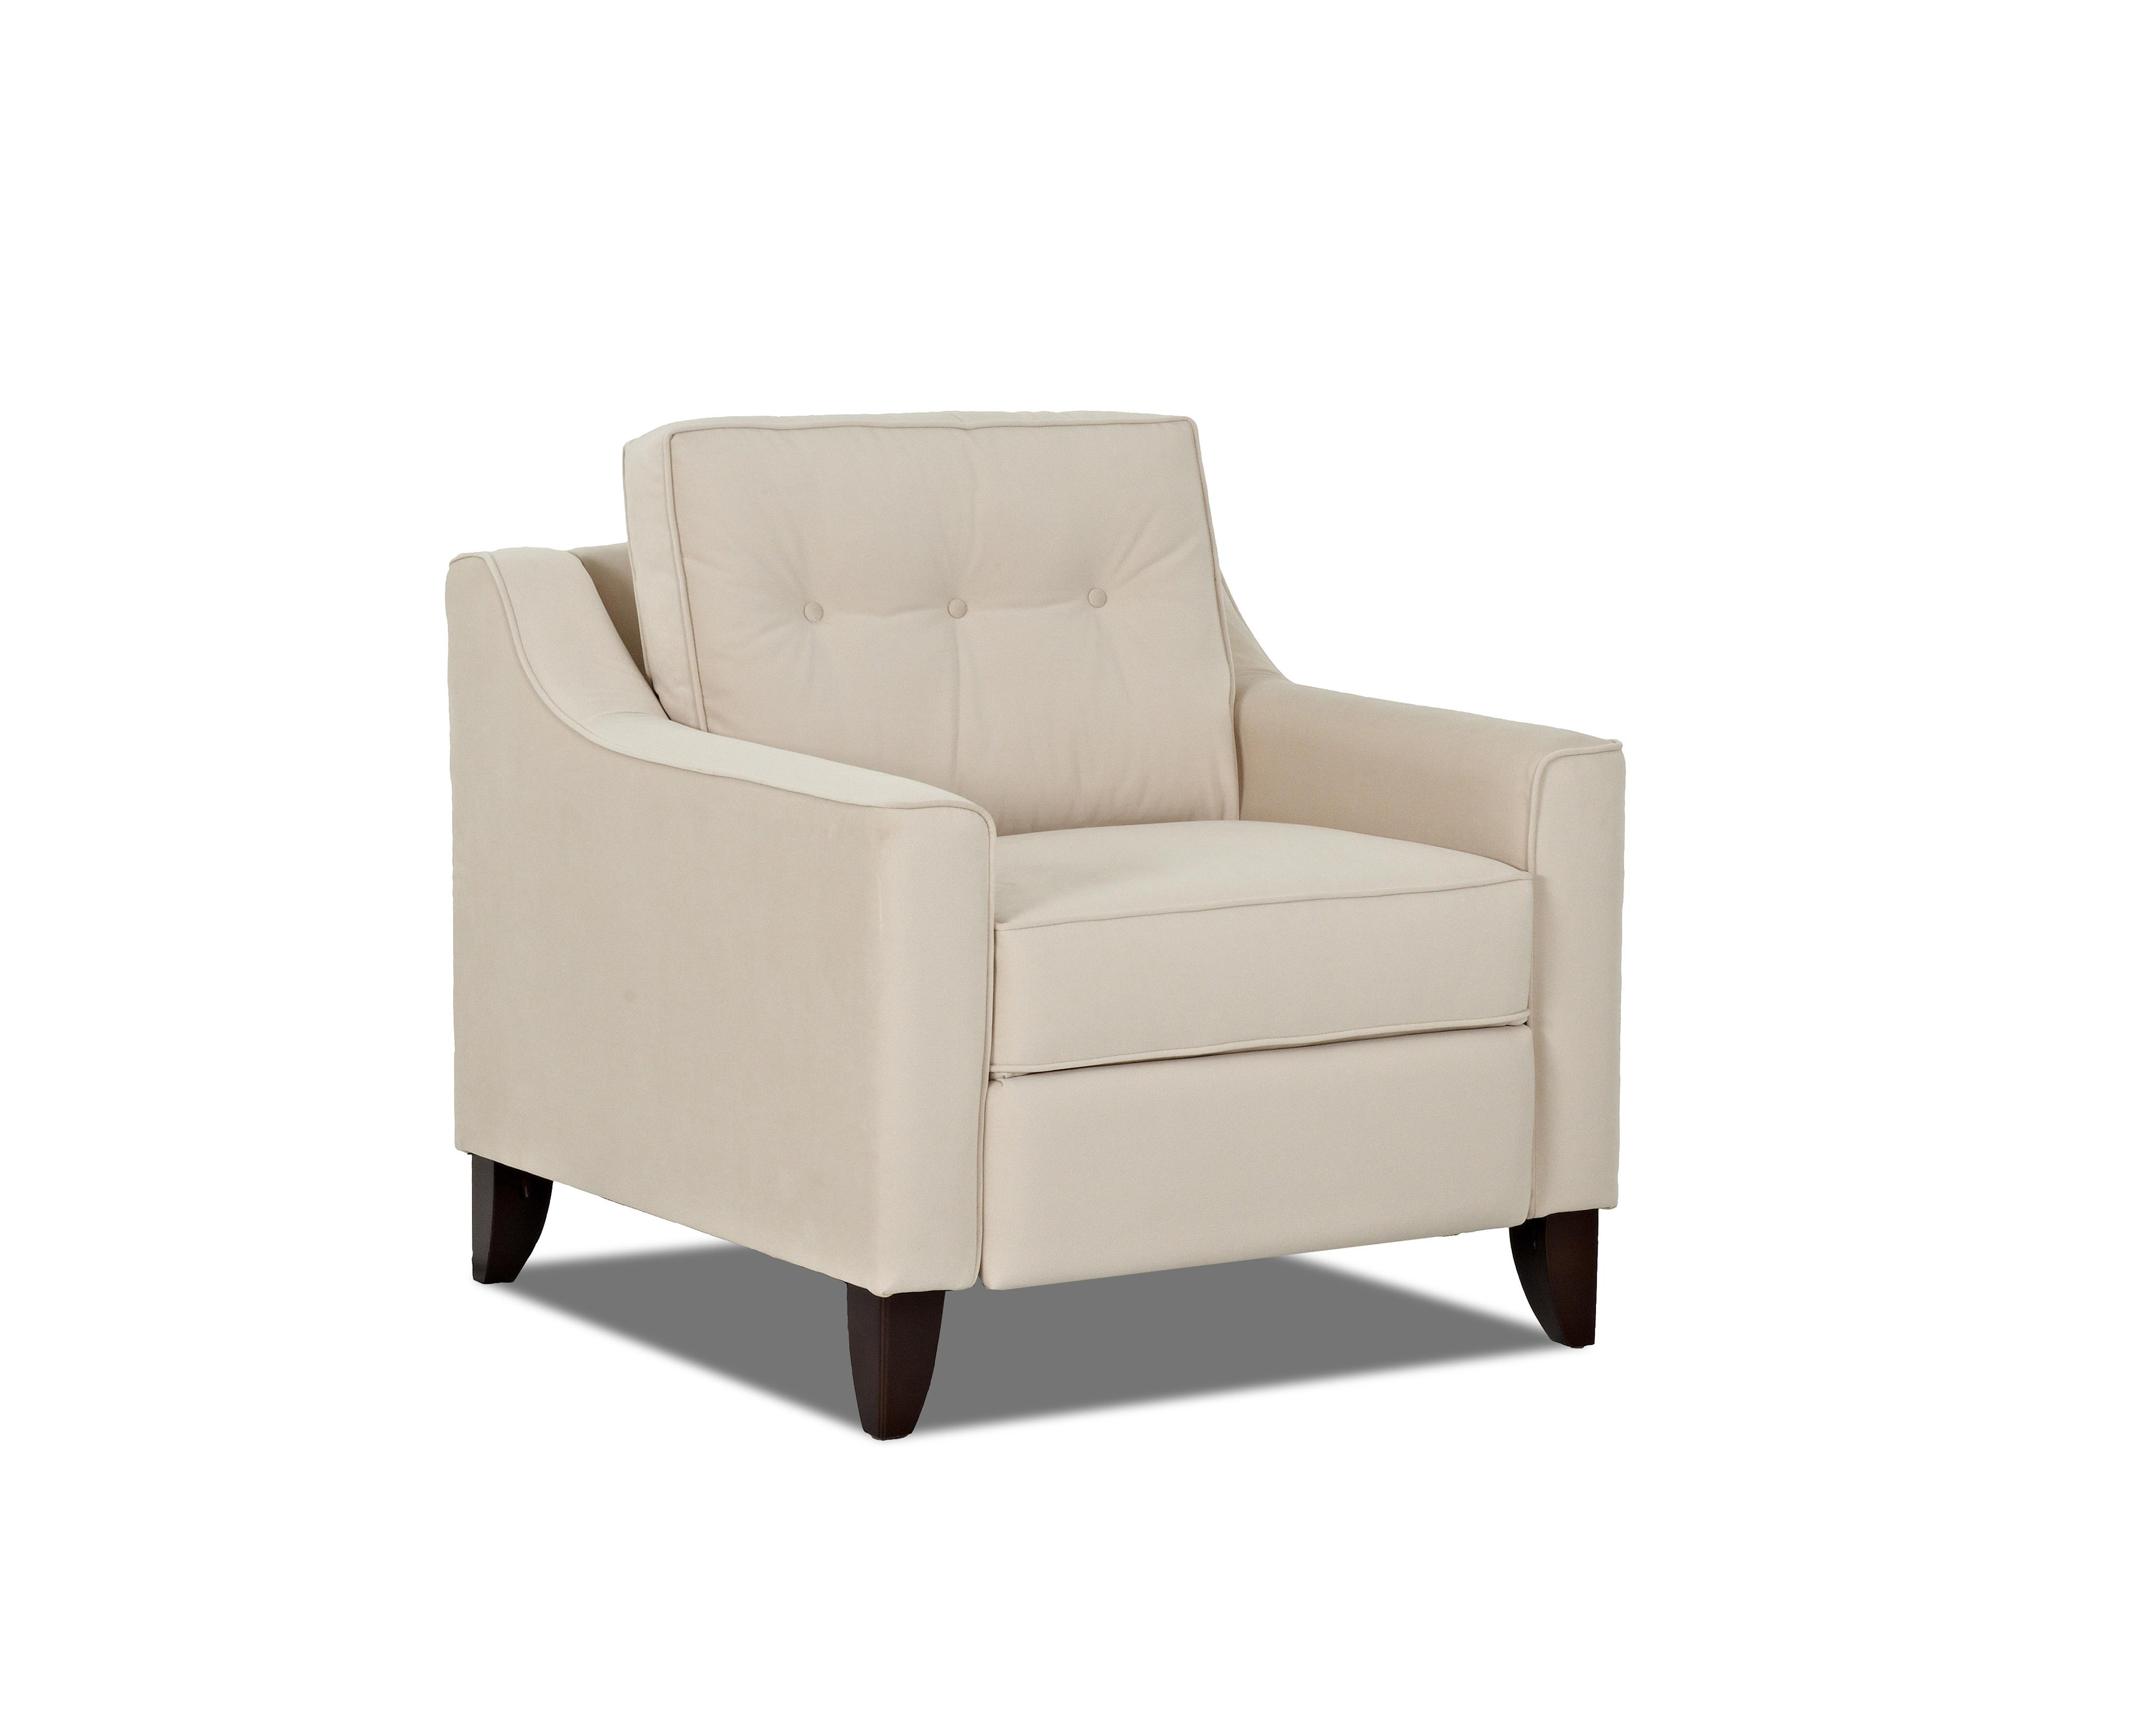 Audrina Power Reclining Chair by Klaussner at Johnny Janosik